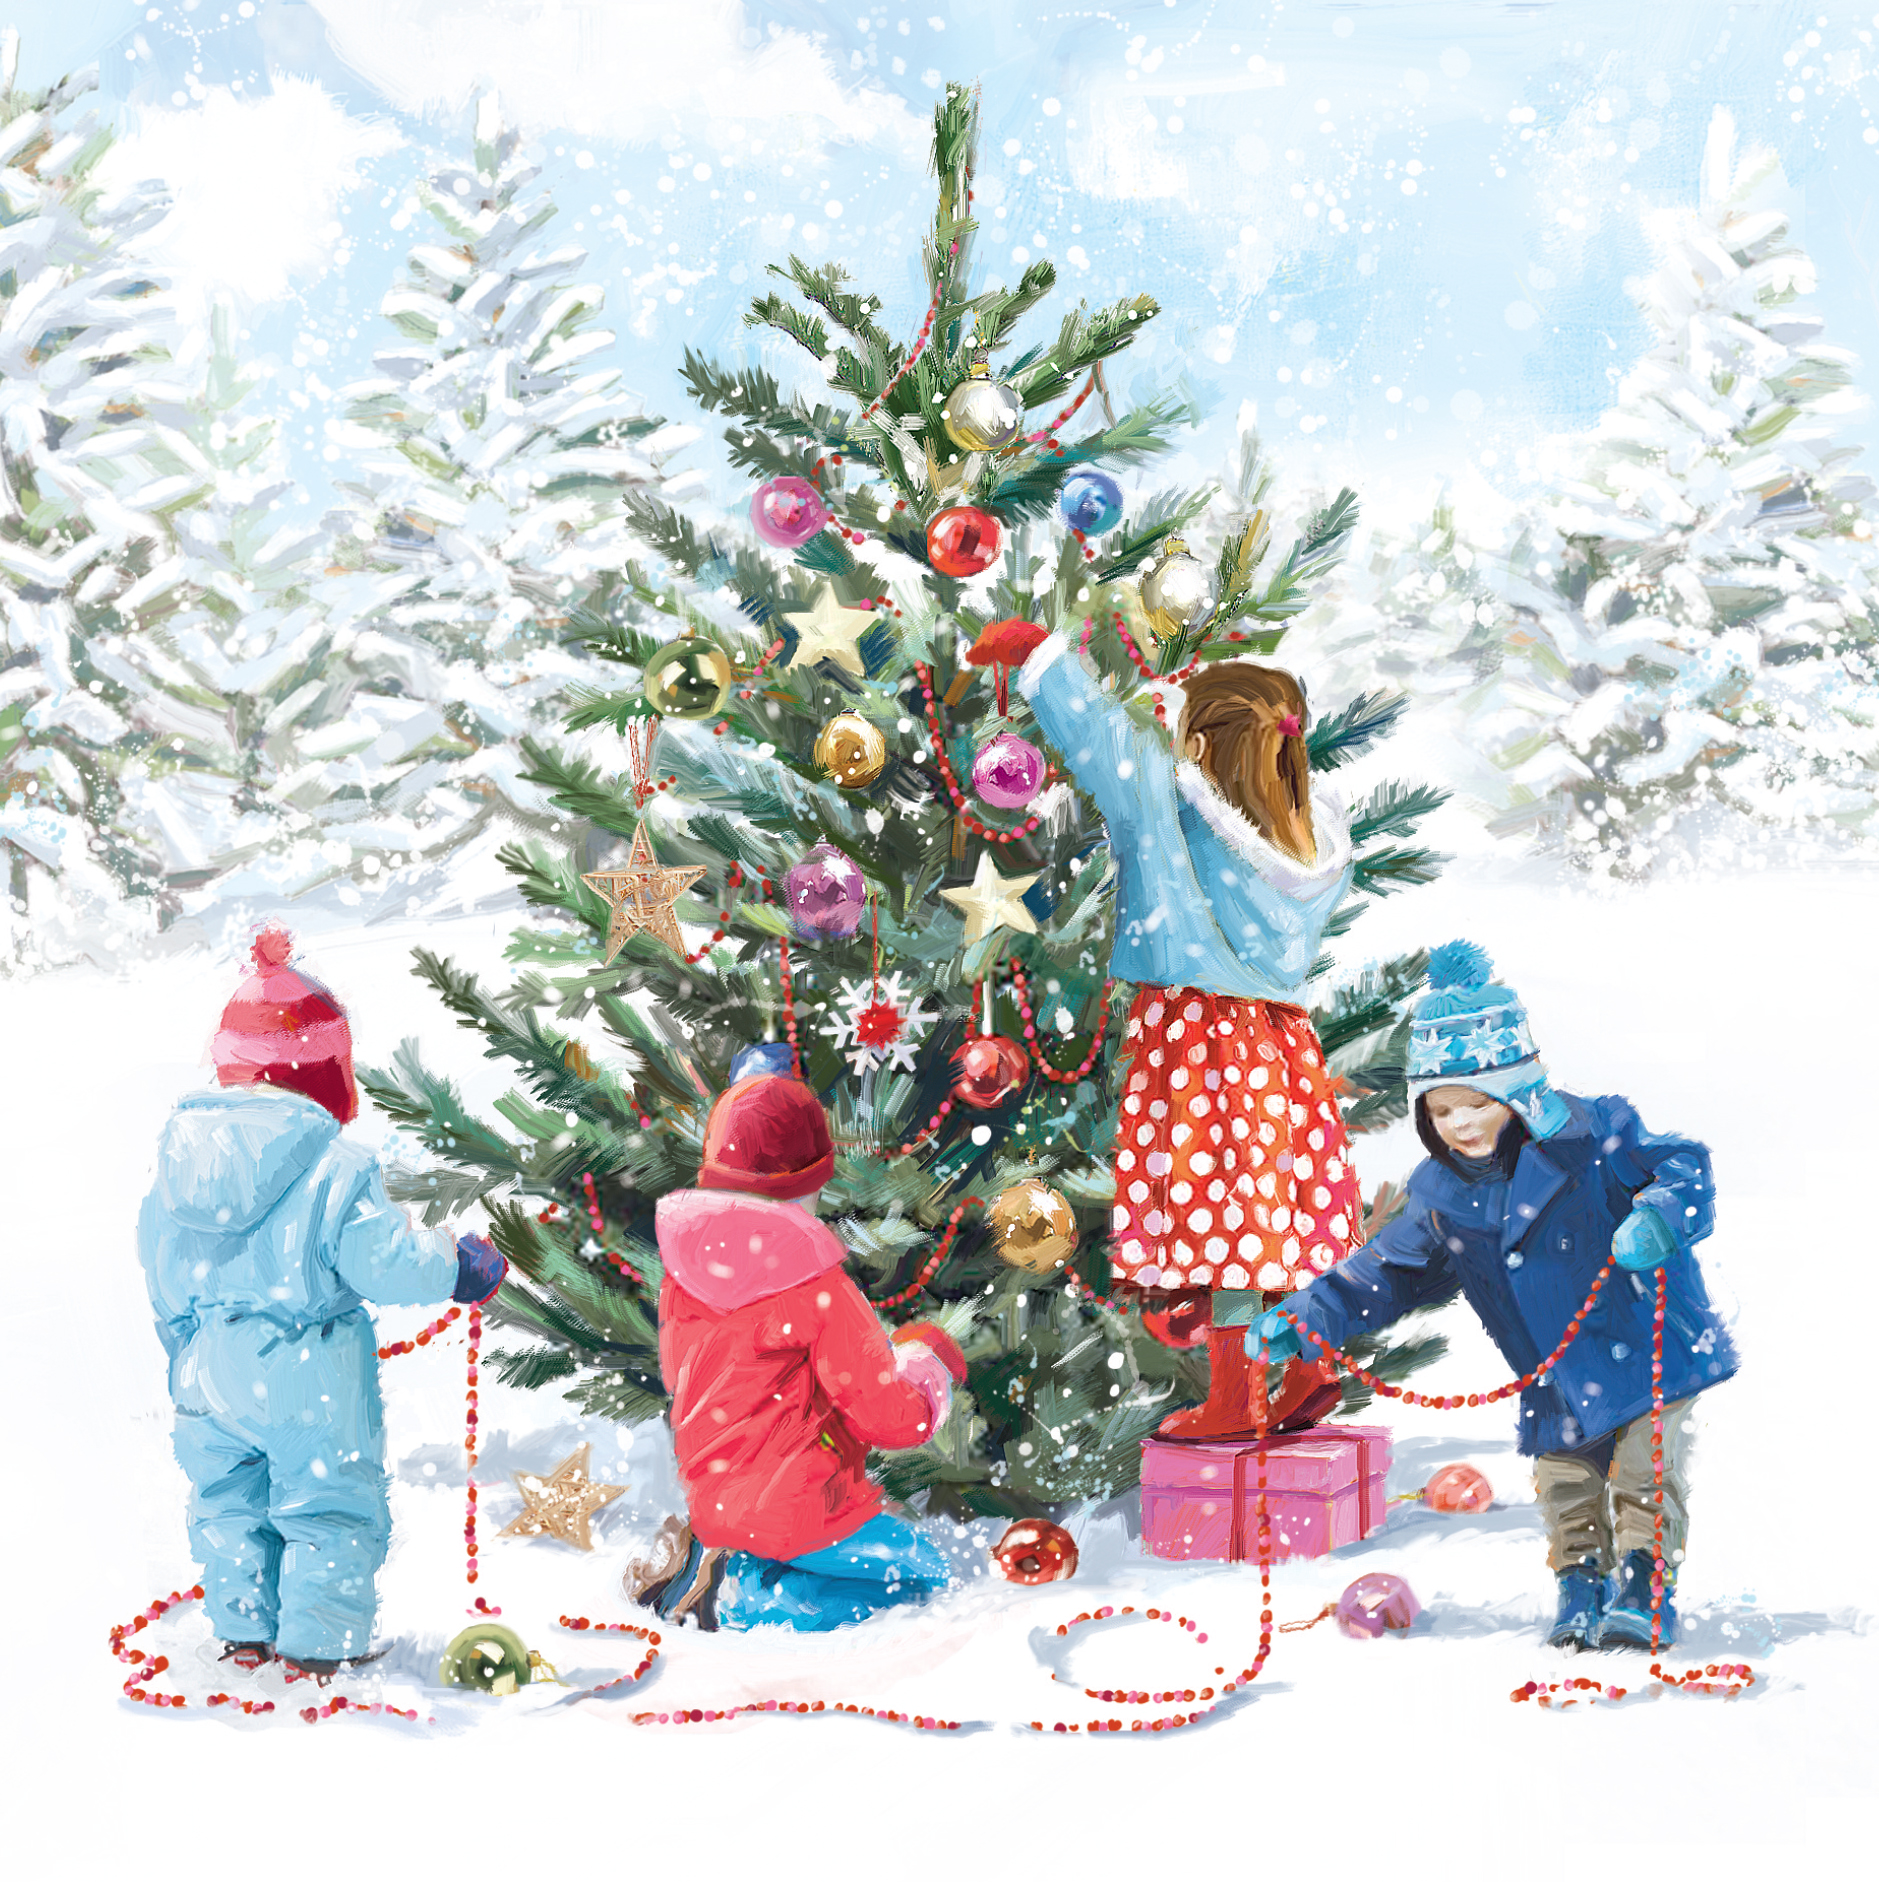 Four children decorating a Christmas tree outside